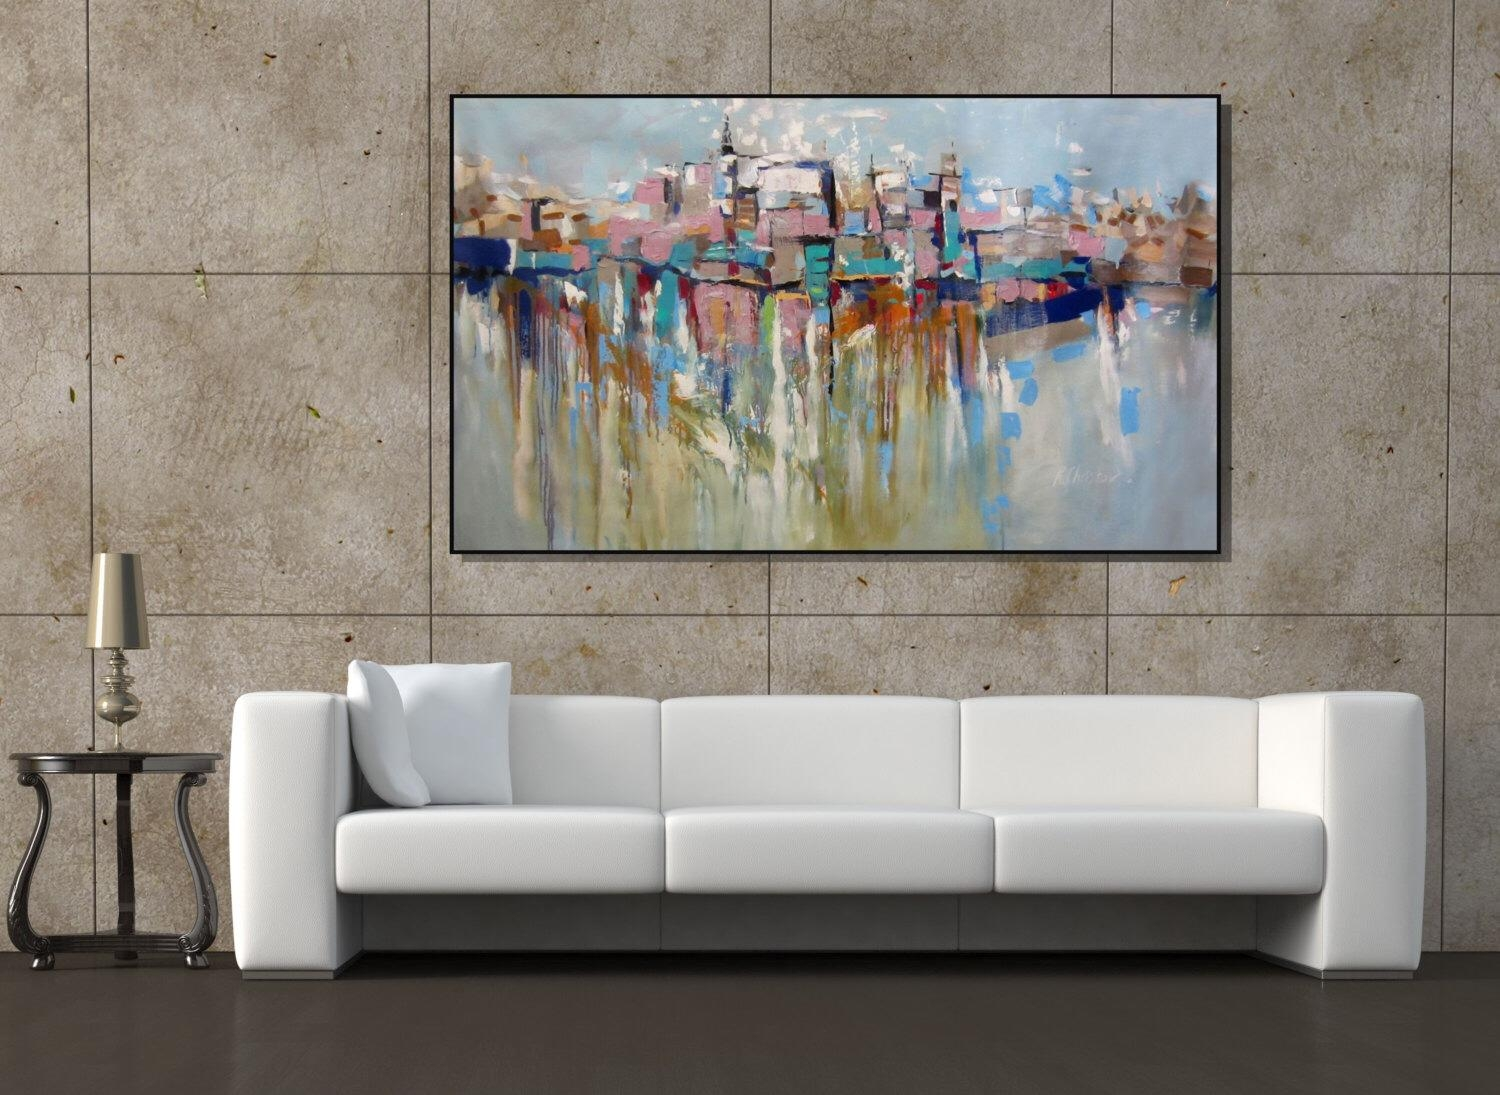 Ergonomic Wall Design Large Canvas Print Rustic Extra Large Wall Throughout Art For Large Wall (View 19 of 20)